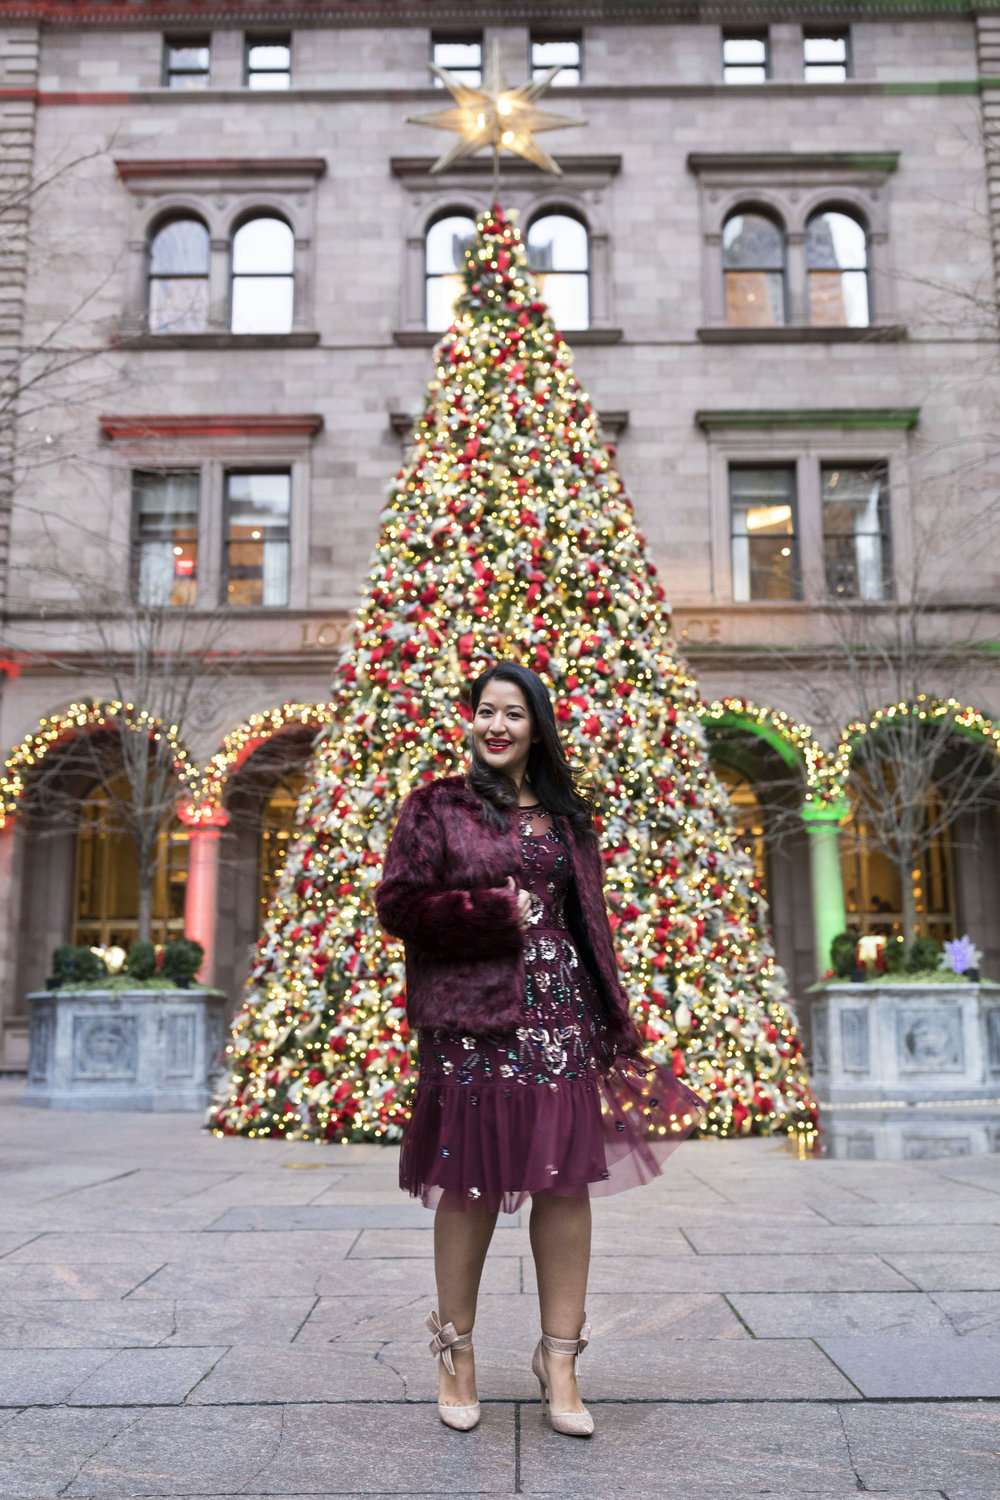 Krity S x Holiday Outfit x Aidan Beaded Burgundy Short Dress5.jpg